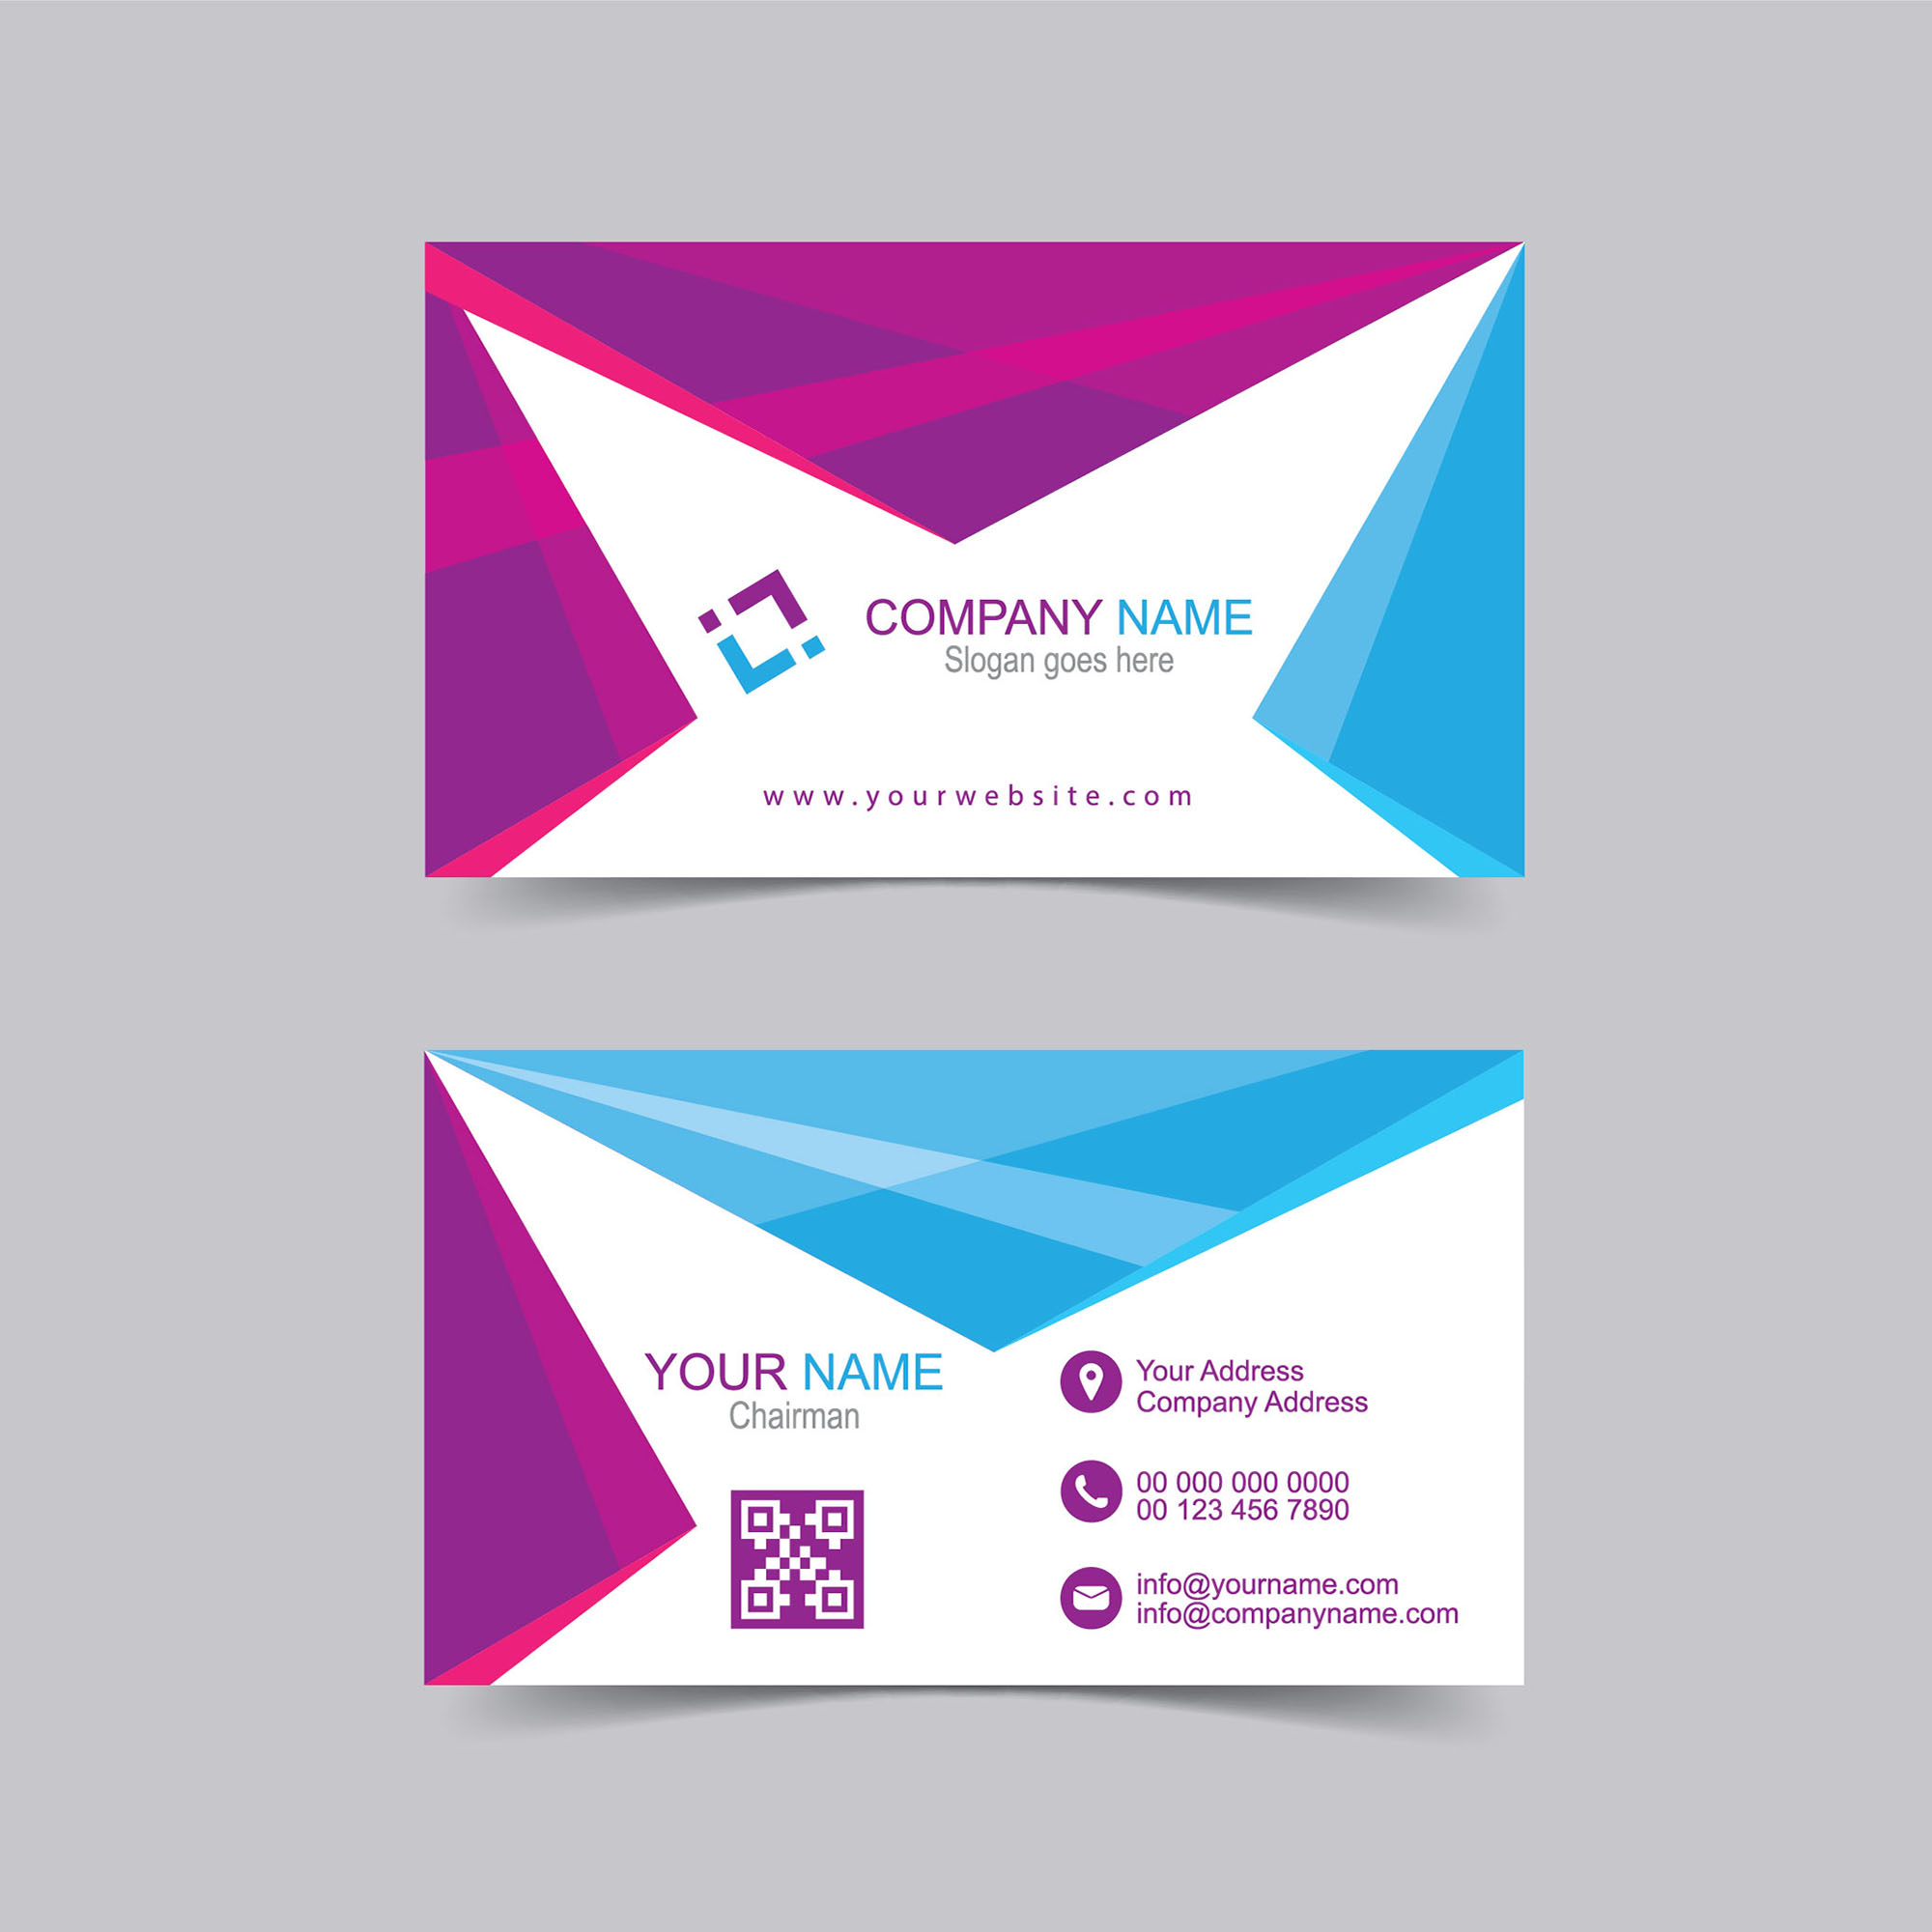 Visiting card vector template free download wisxi business card business cards business card design business card template design templates reheart Gallery